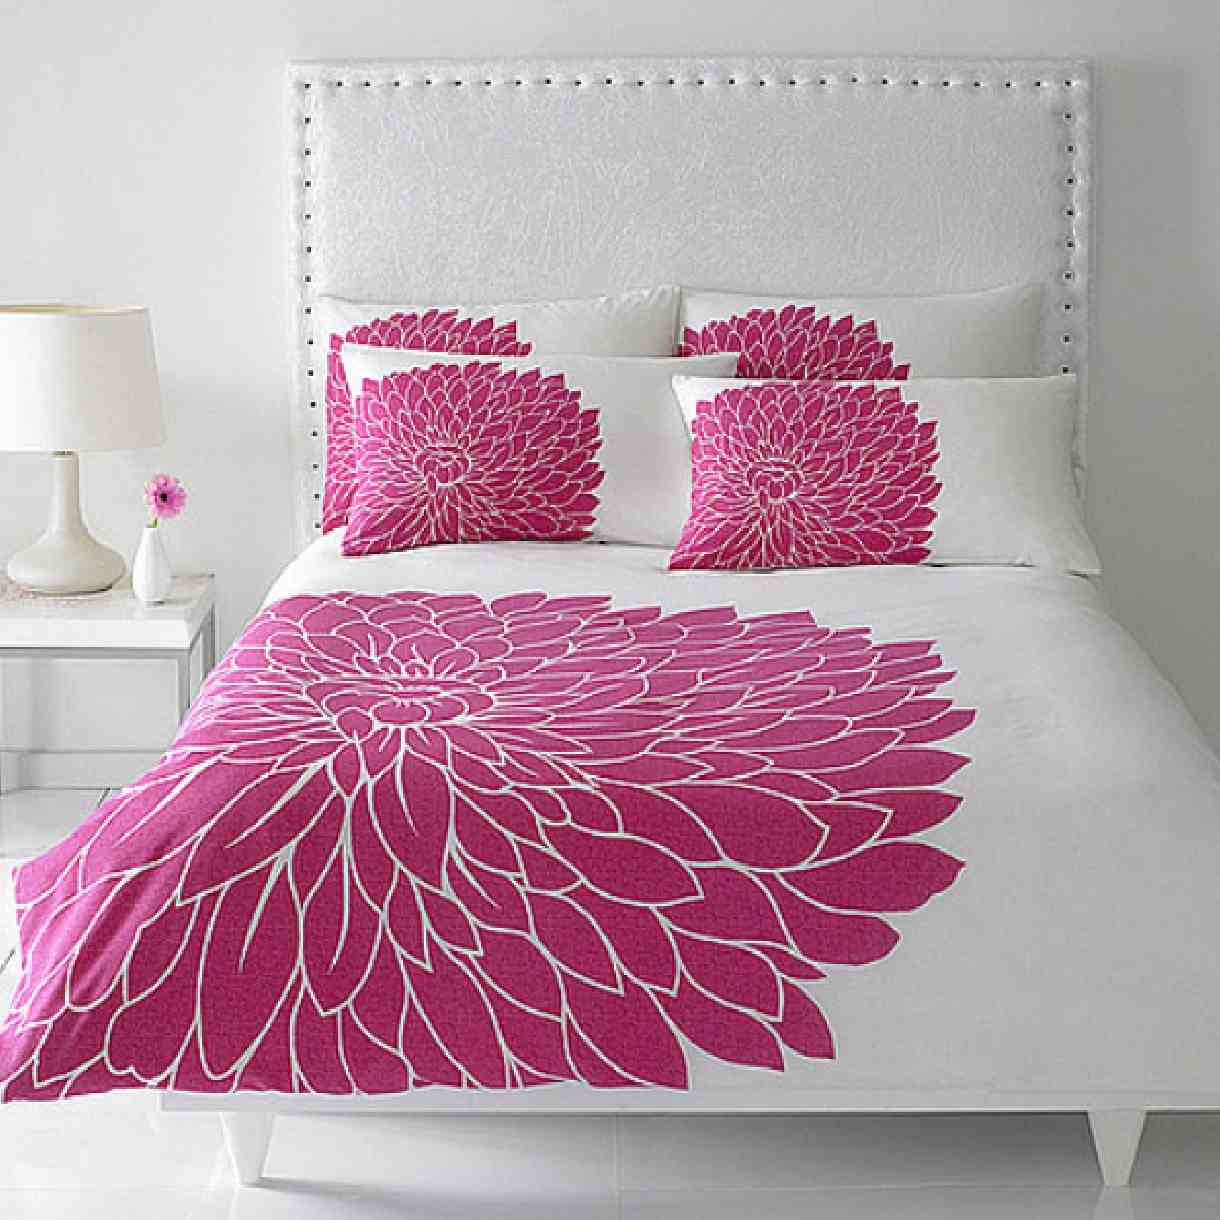 fantastic decorating tips with pink color | my decorative